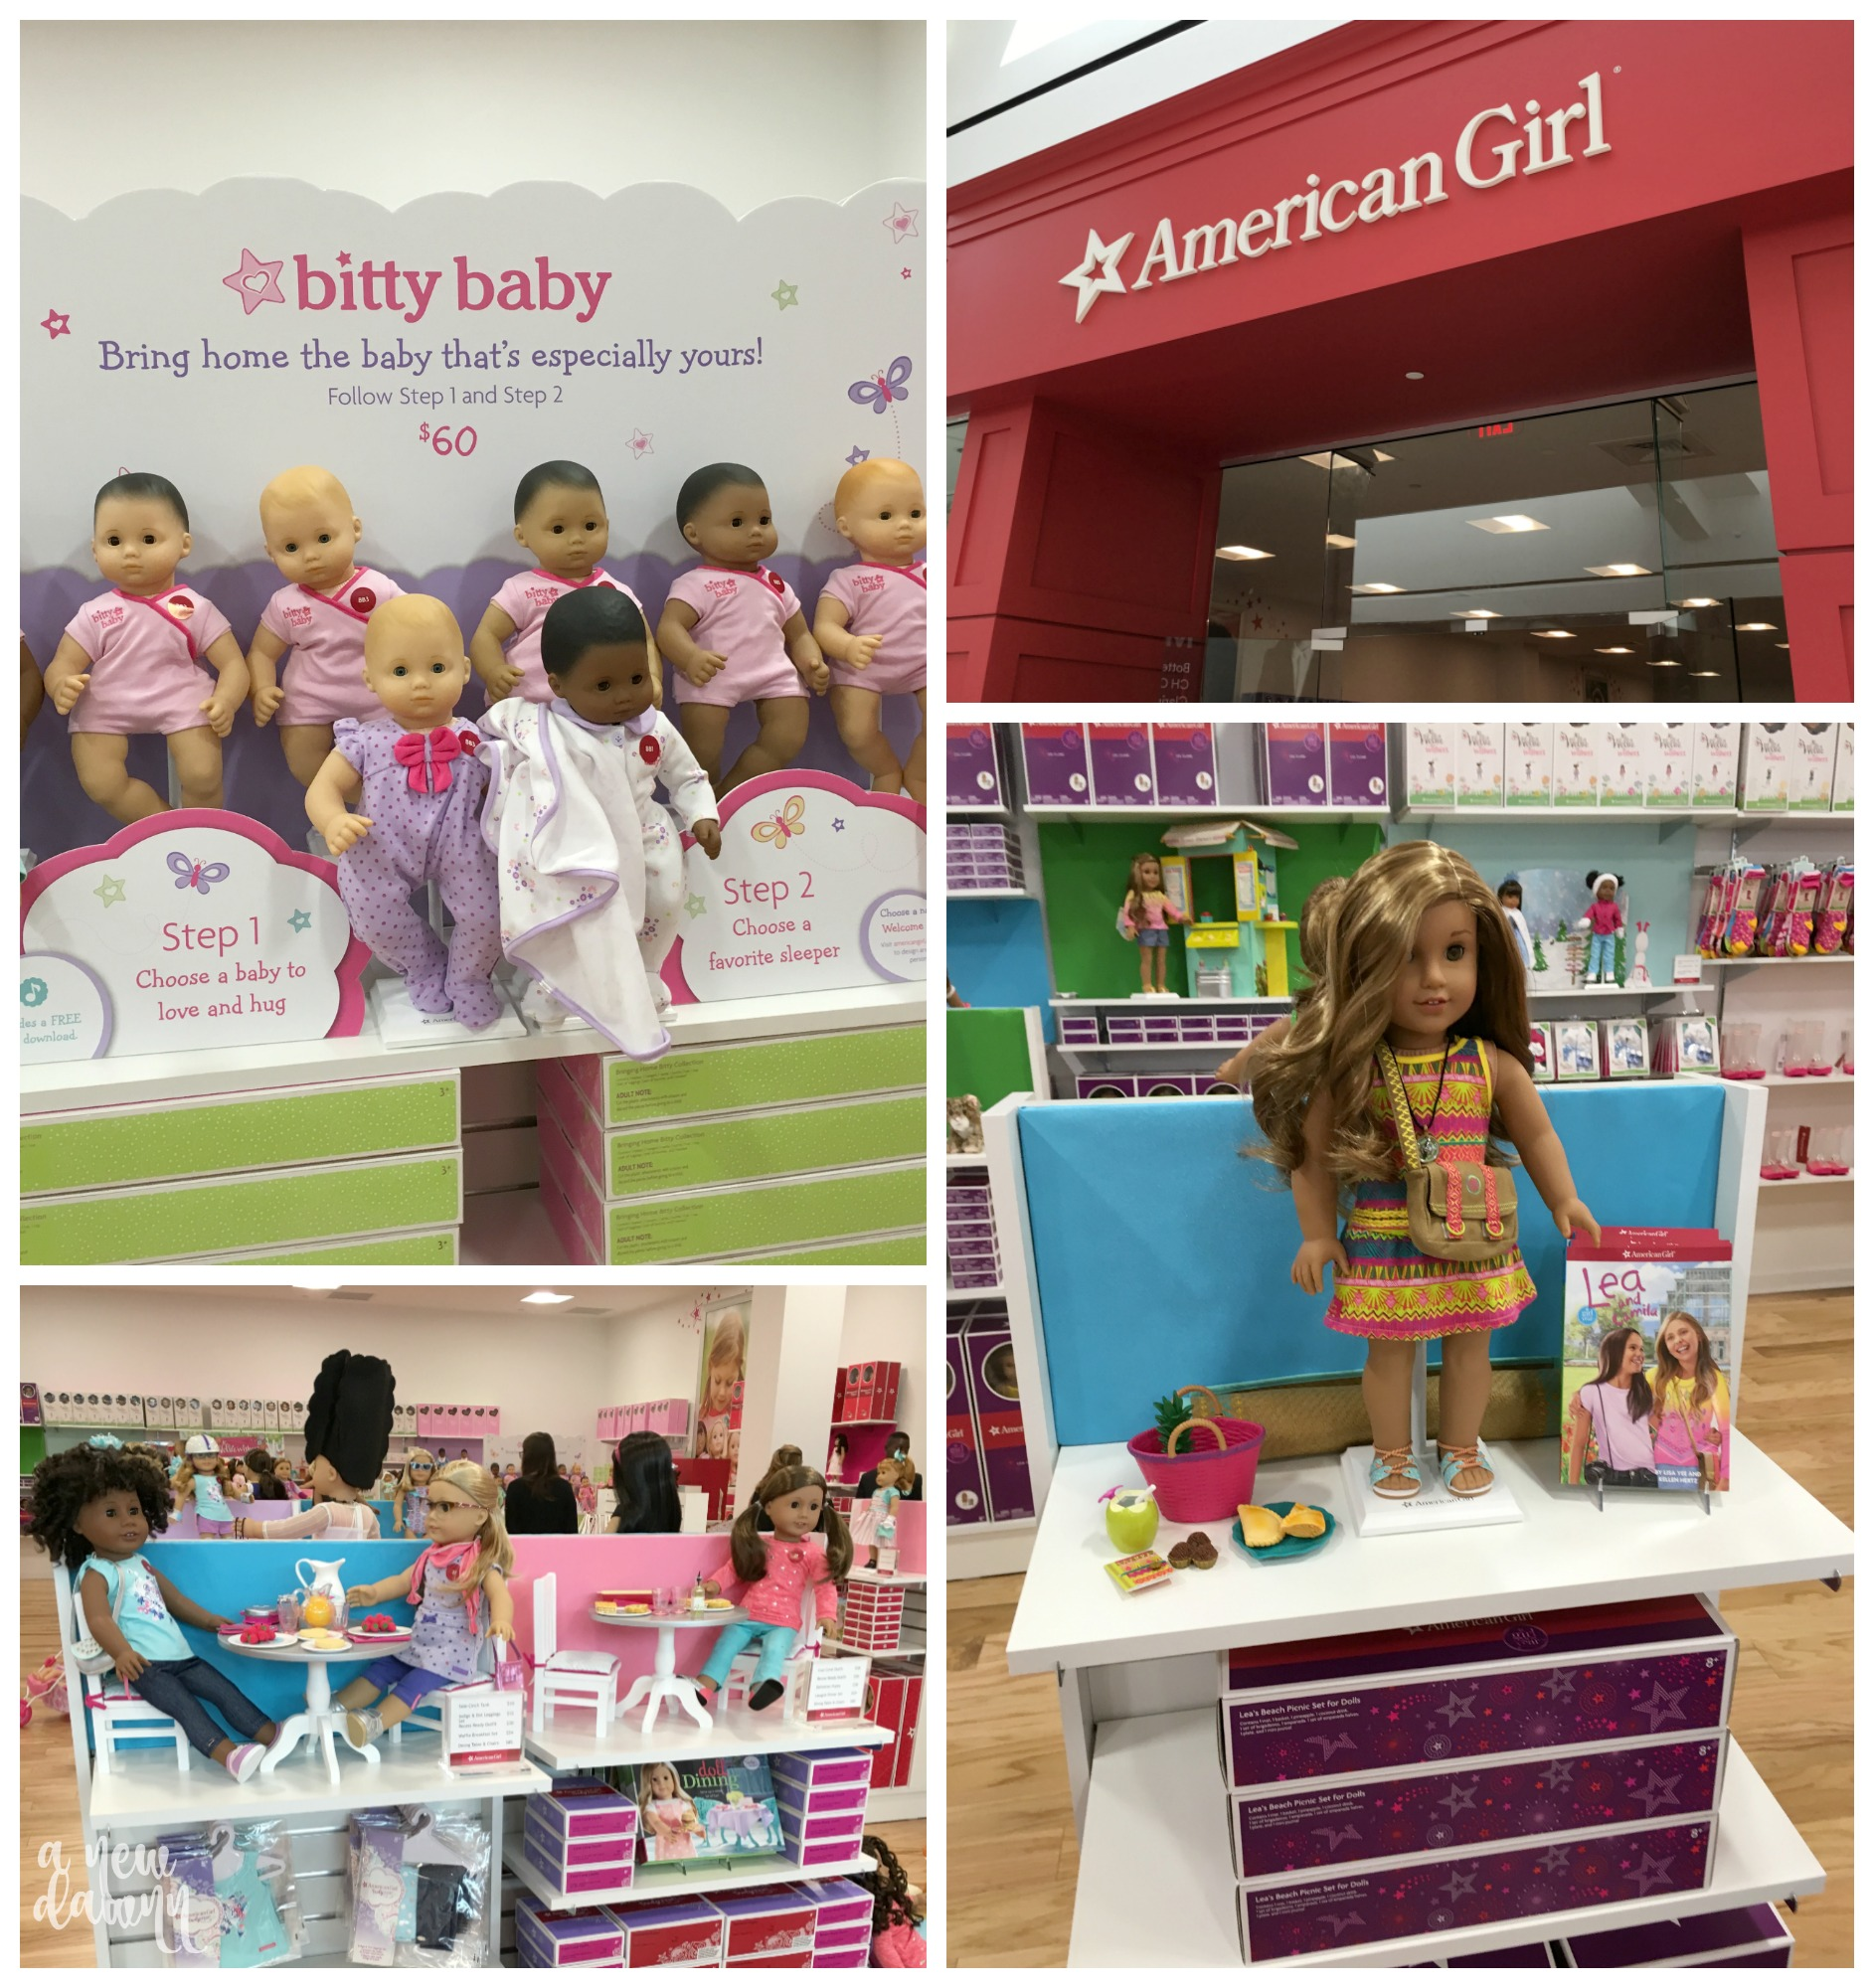 American Girl at the King of Prussia Mall open now!